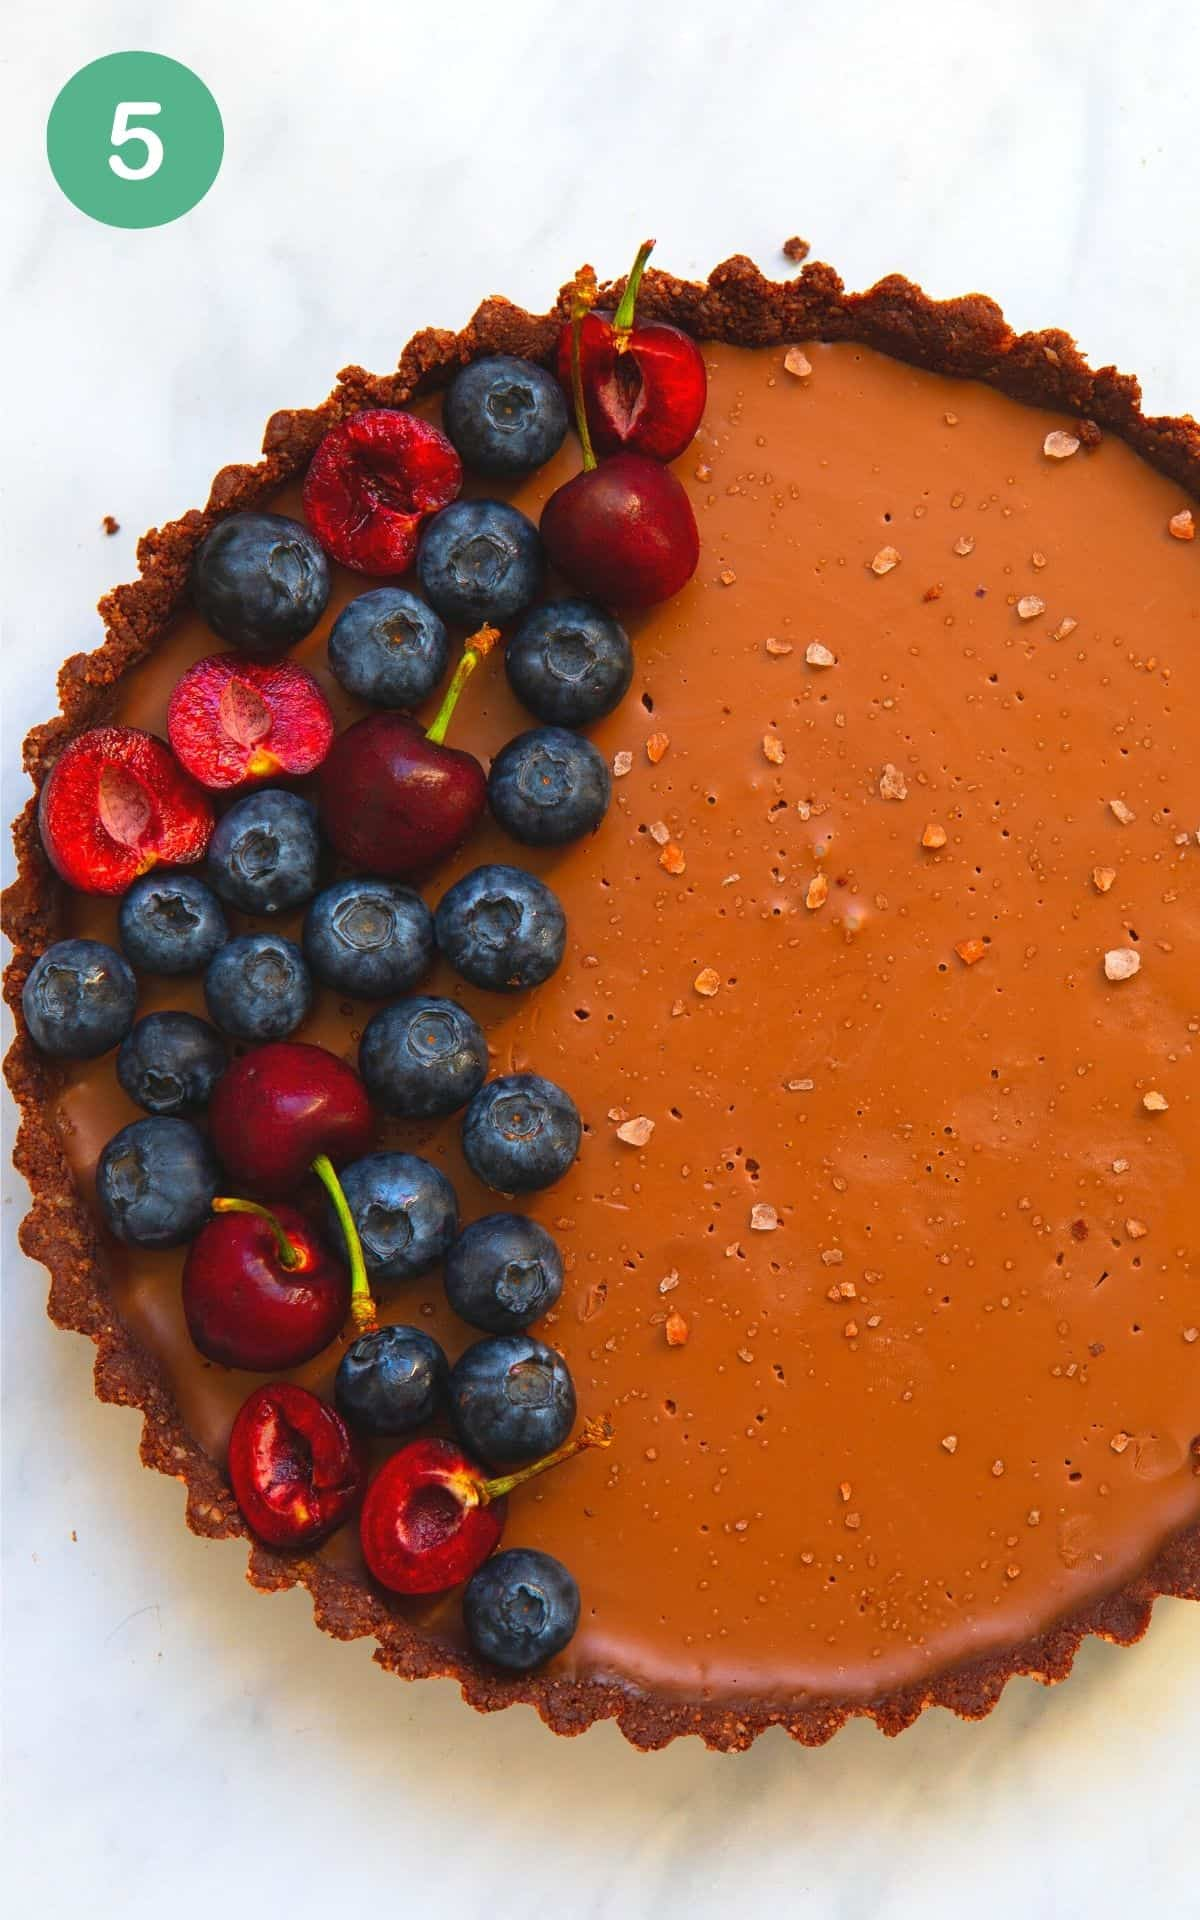 Overhead image of a vegan chocolate tart with fresh berries on top and flakey salts.